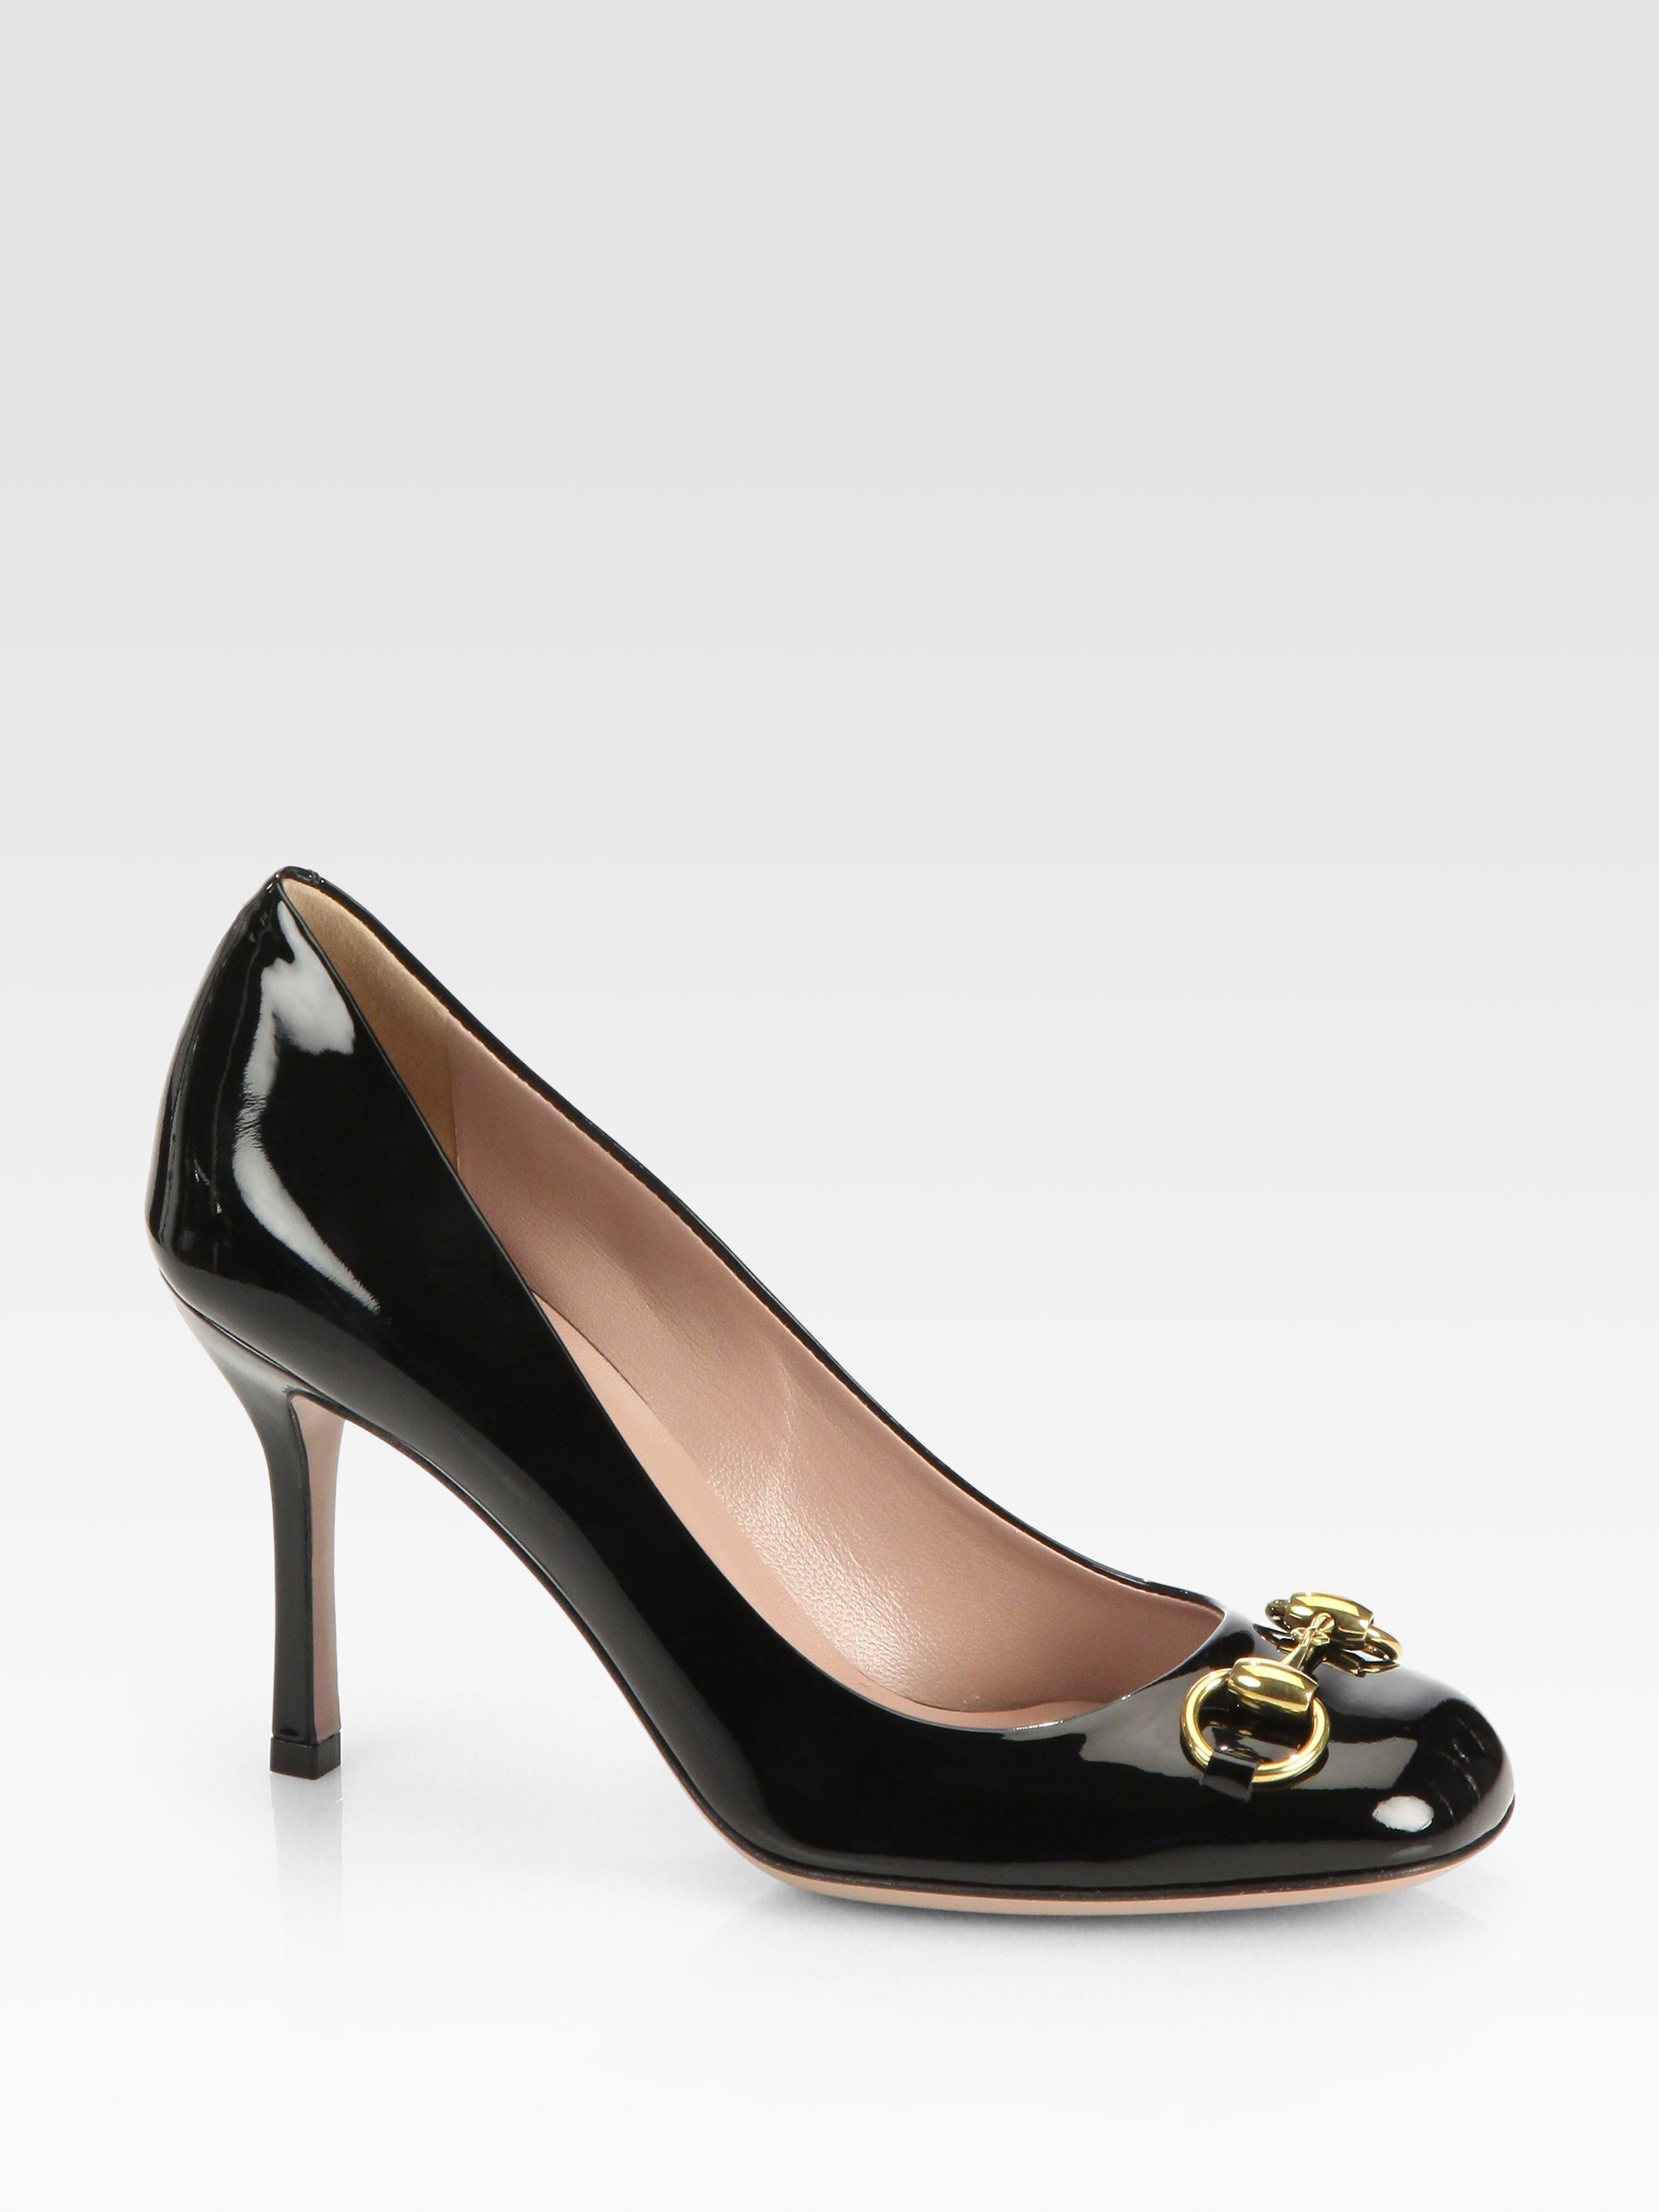 fe227e5ff5f0 Lyst - Gucci Patent Leather Horsebit Pumps in Black